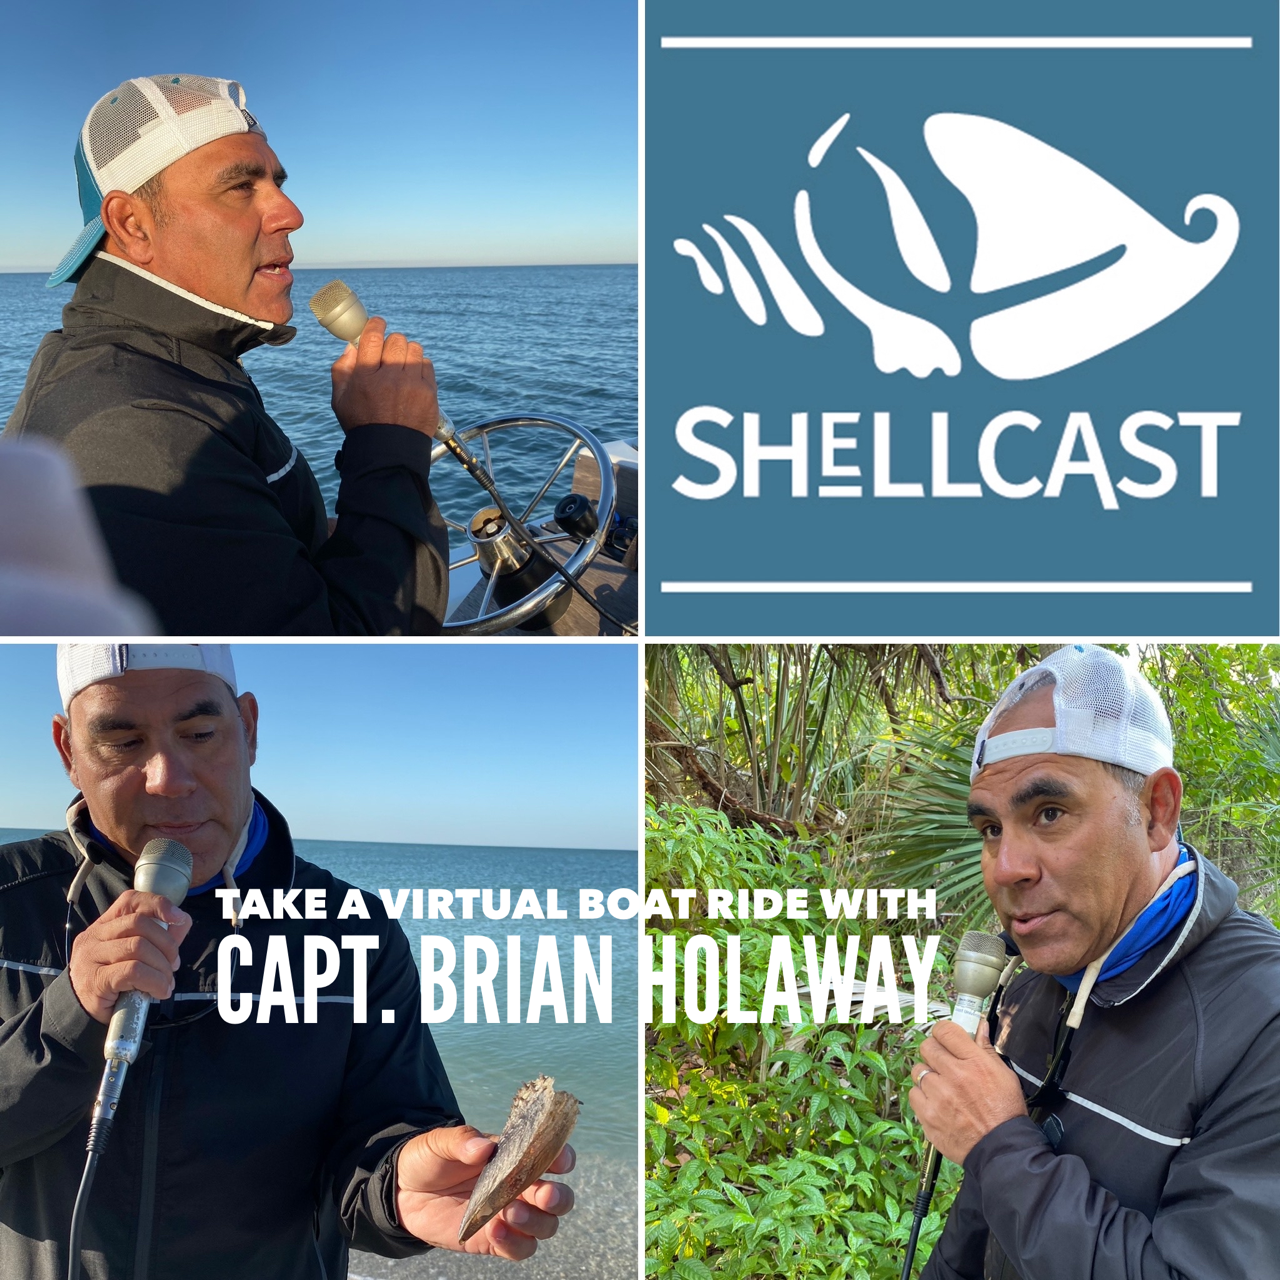 Shellcast podcast with Capt. Brian Holaway